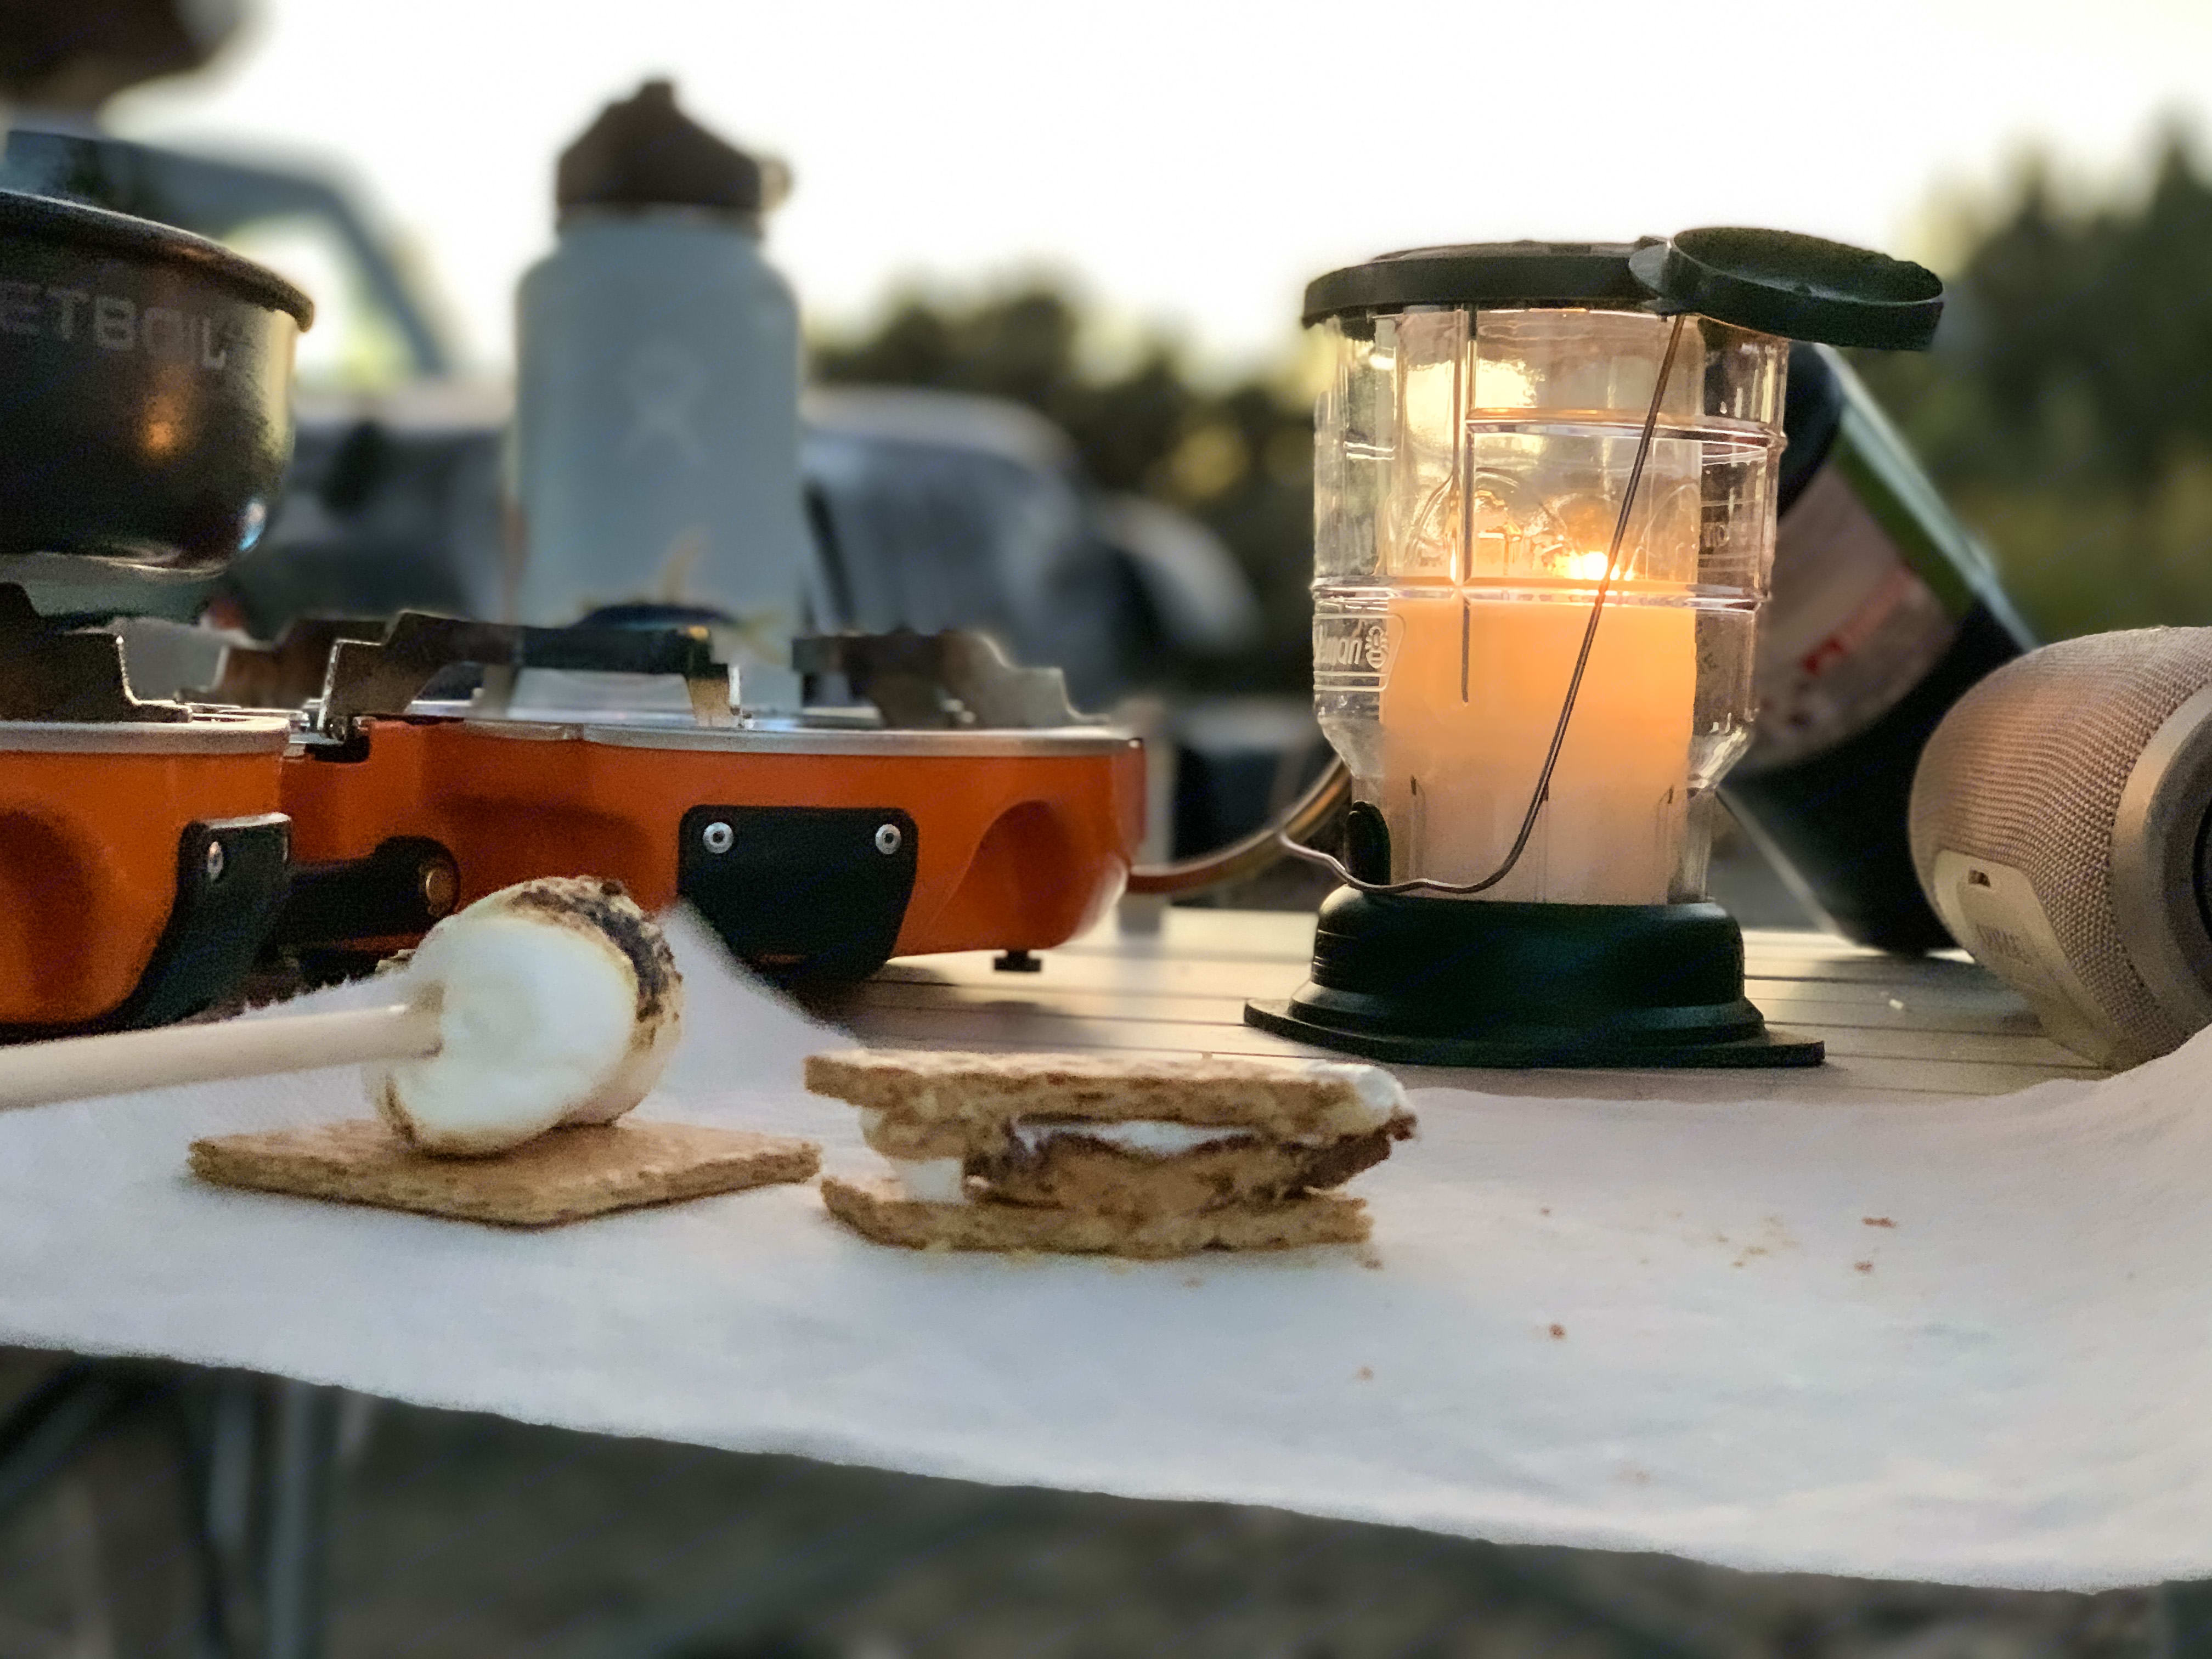 Enjoy smores in some incredible campsites, places you cannot reach without 4 wheel drive. Jeep Wrangler Unlimited 2016